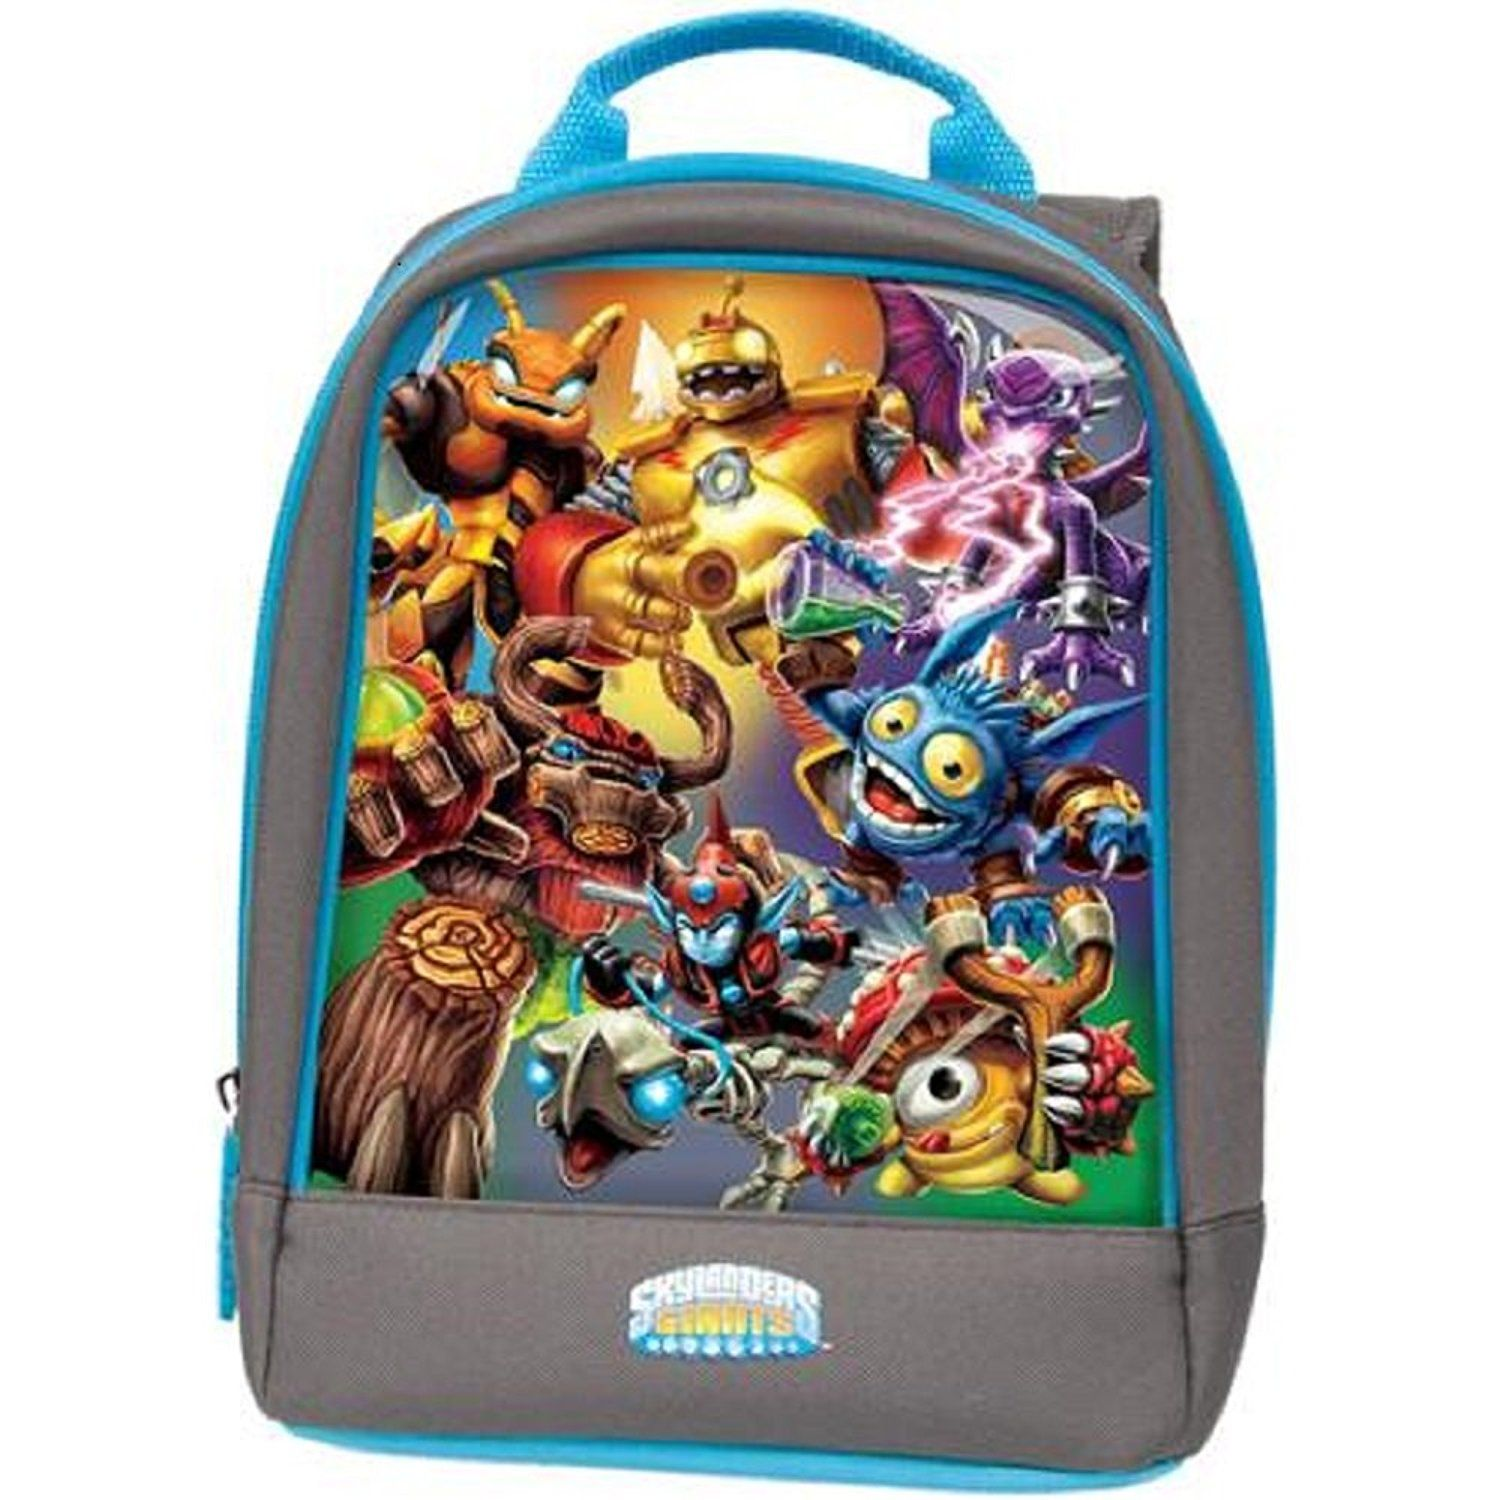 POWER A Skylanders Mini Sling - BLUE by Activision ** Check out this great product. (This is an Amazon Affiliate link)